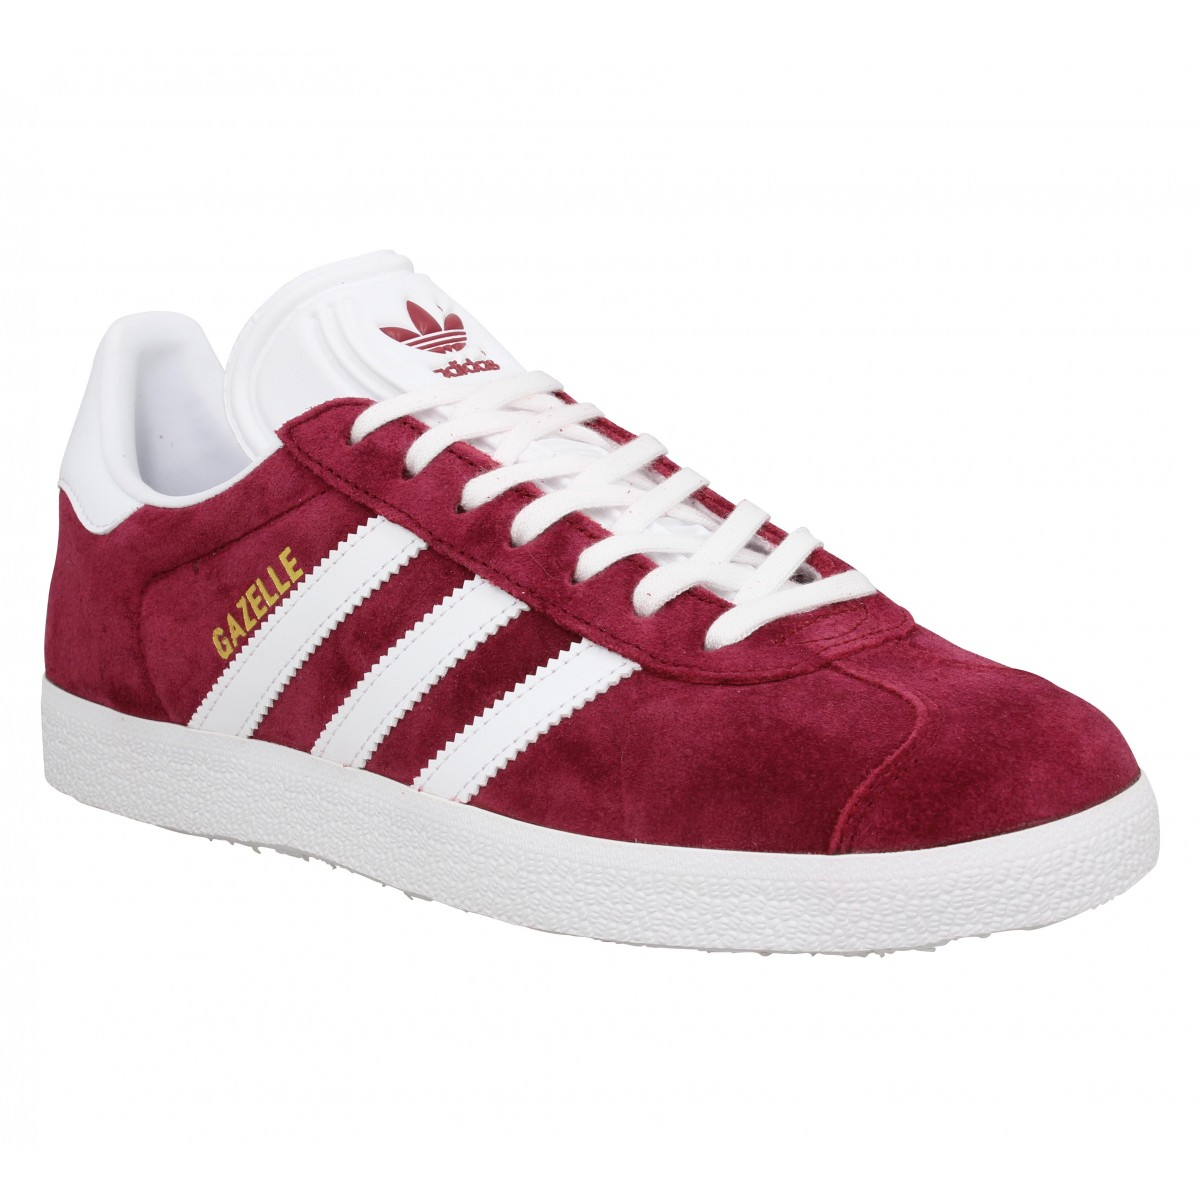 Baskets ADIDAS Gazelle velours Burgundy